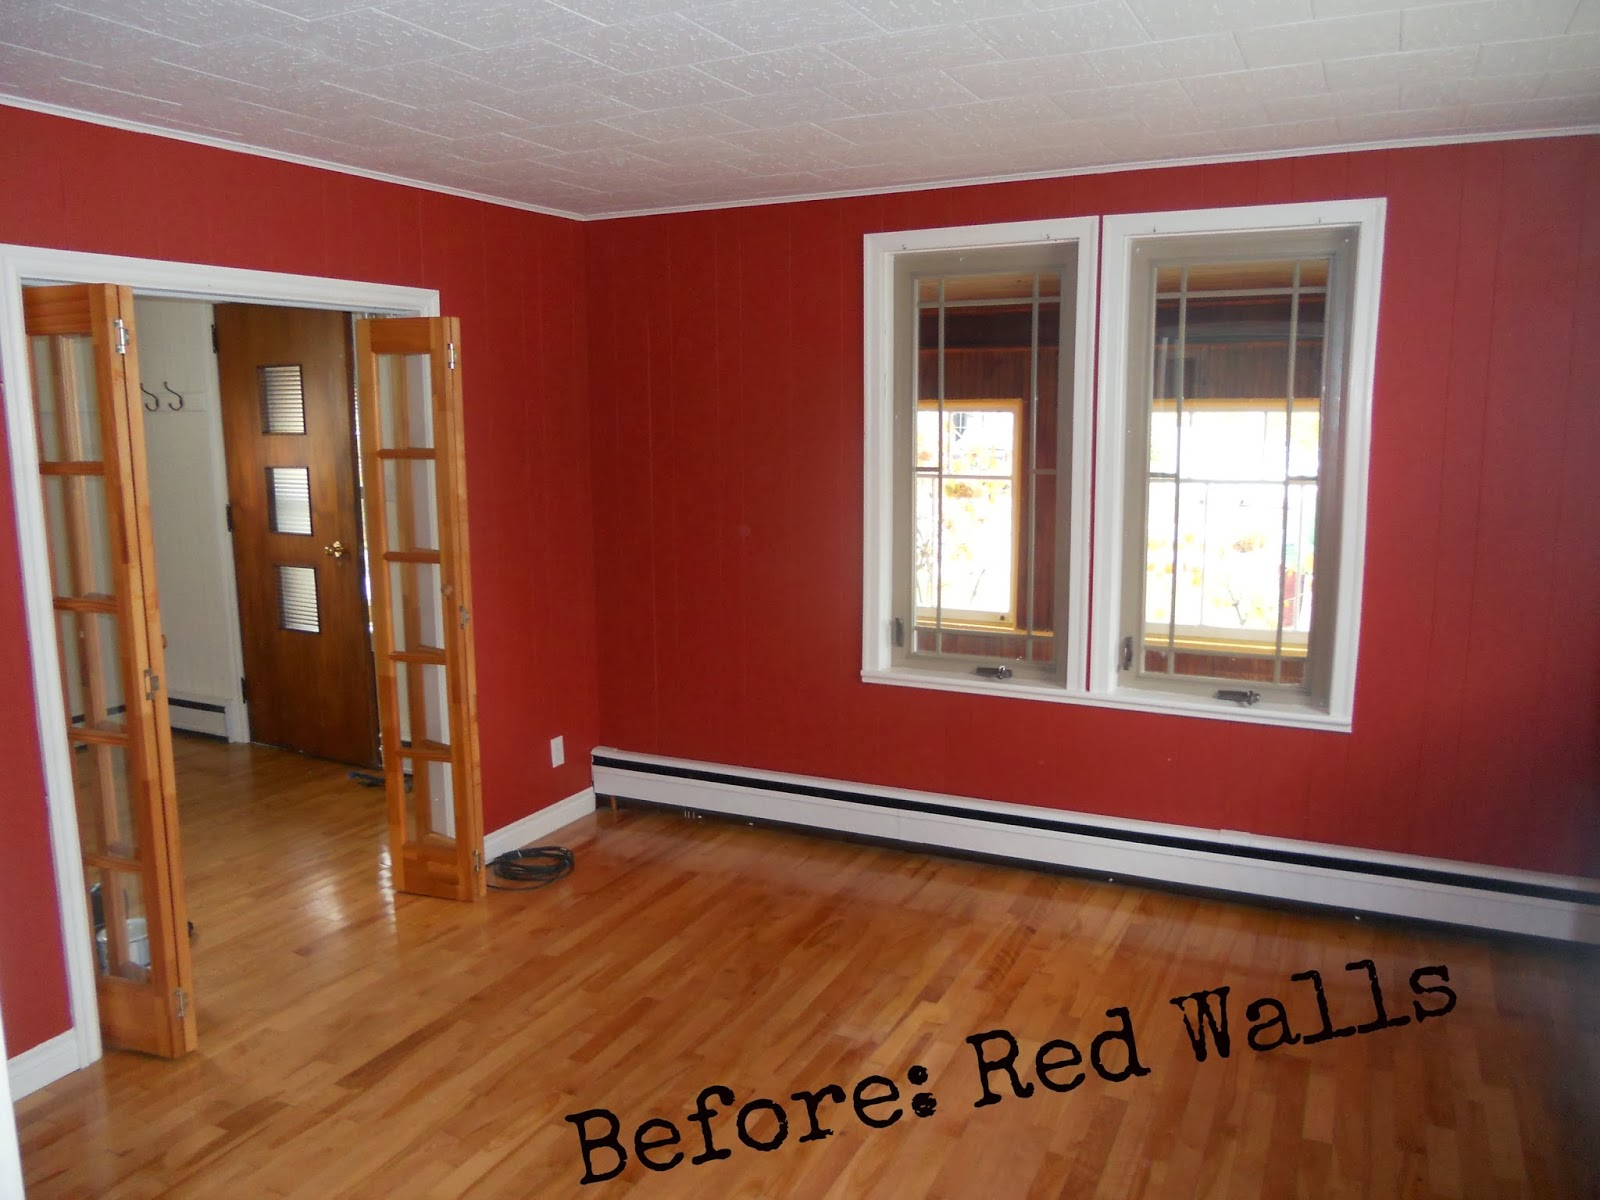 I See A Red Wall And Want It Painted Any Other Color But